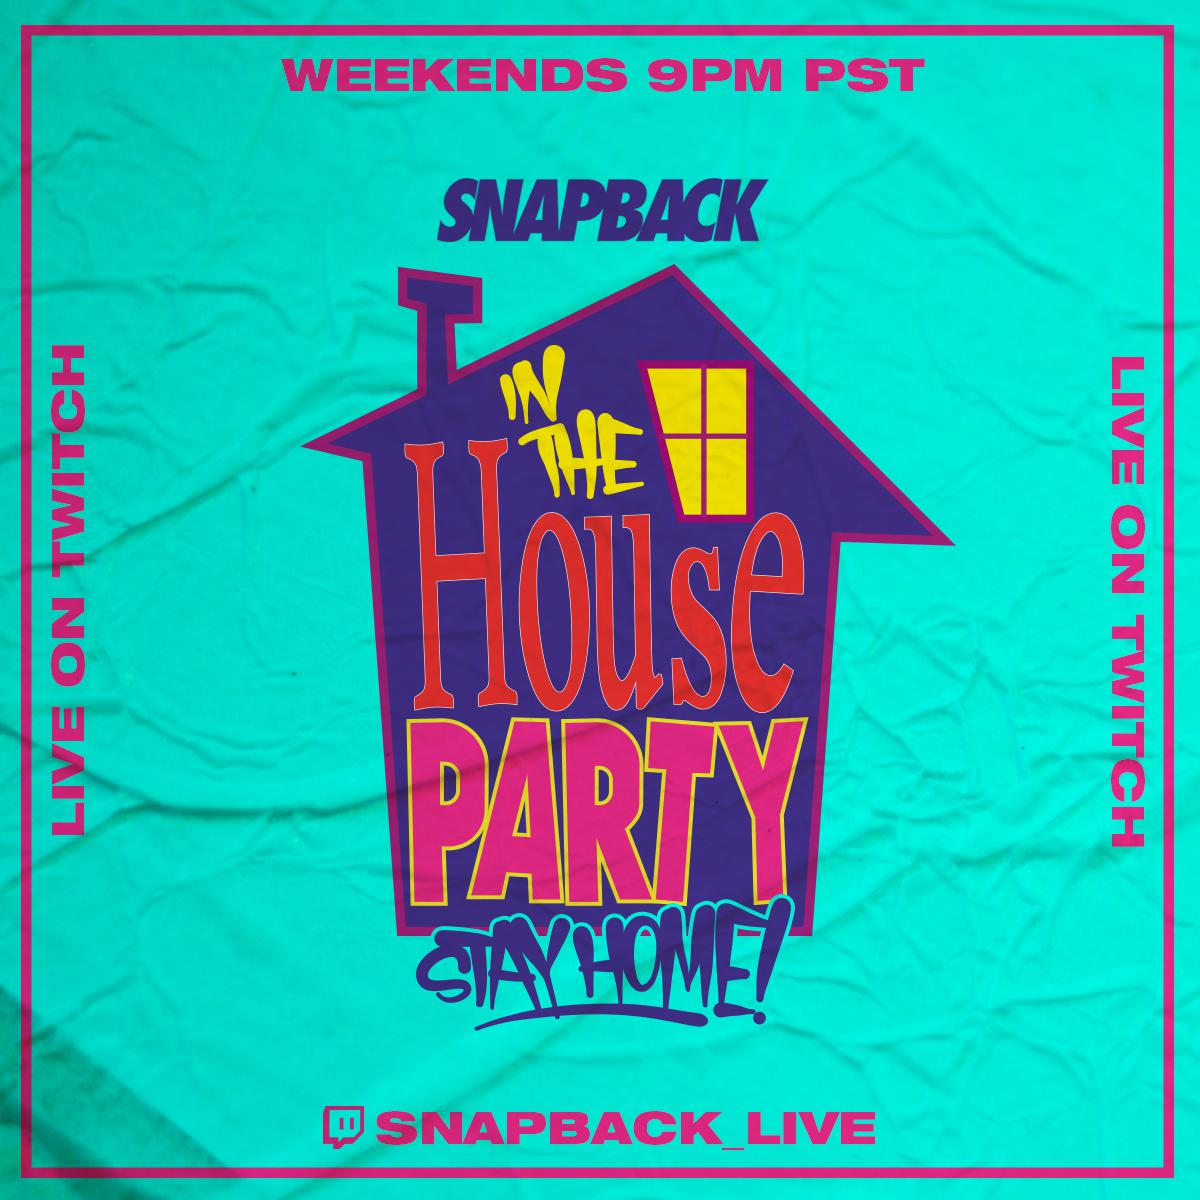 In The House Party